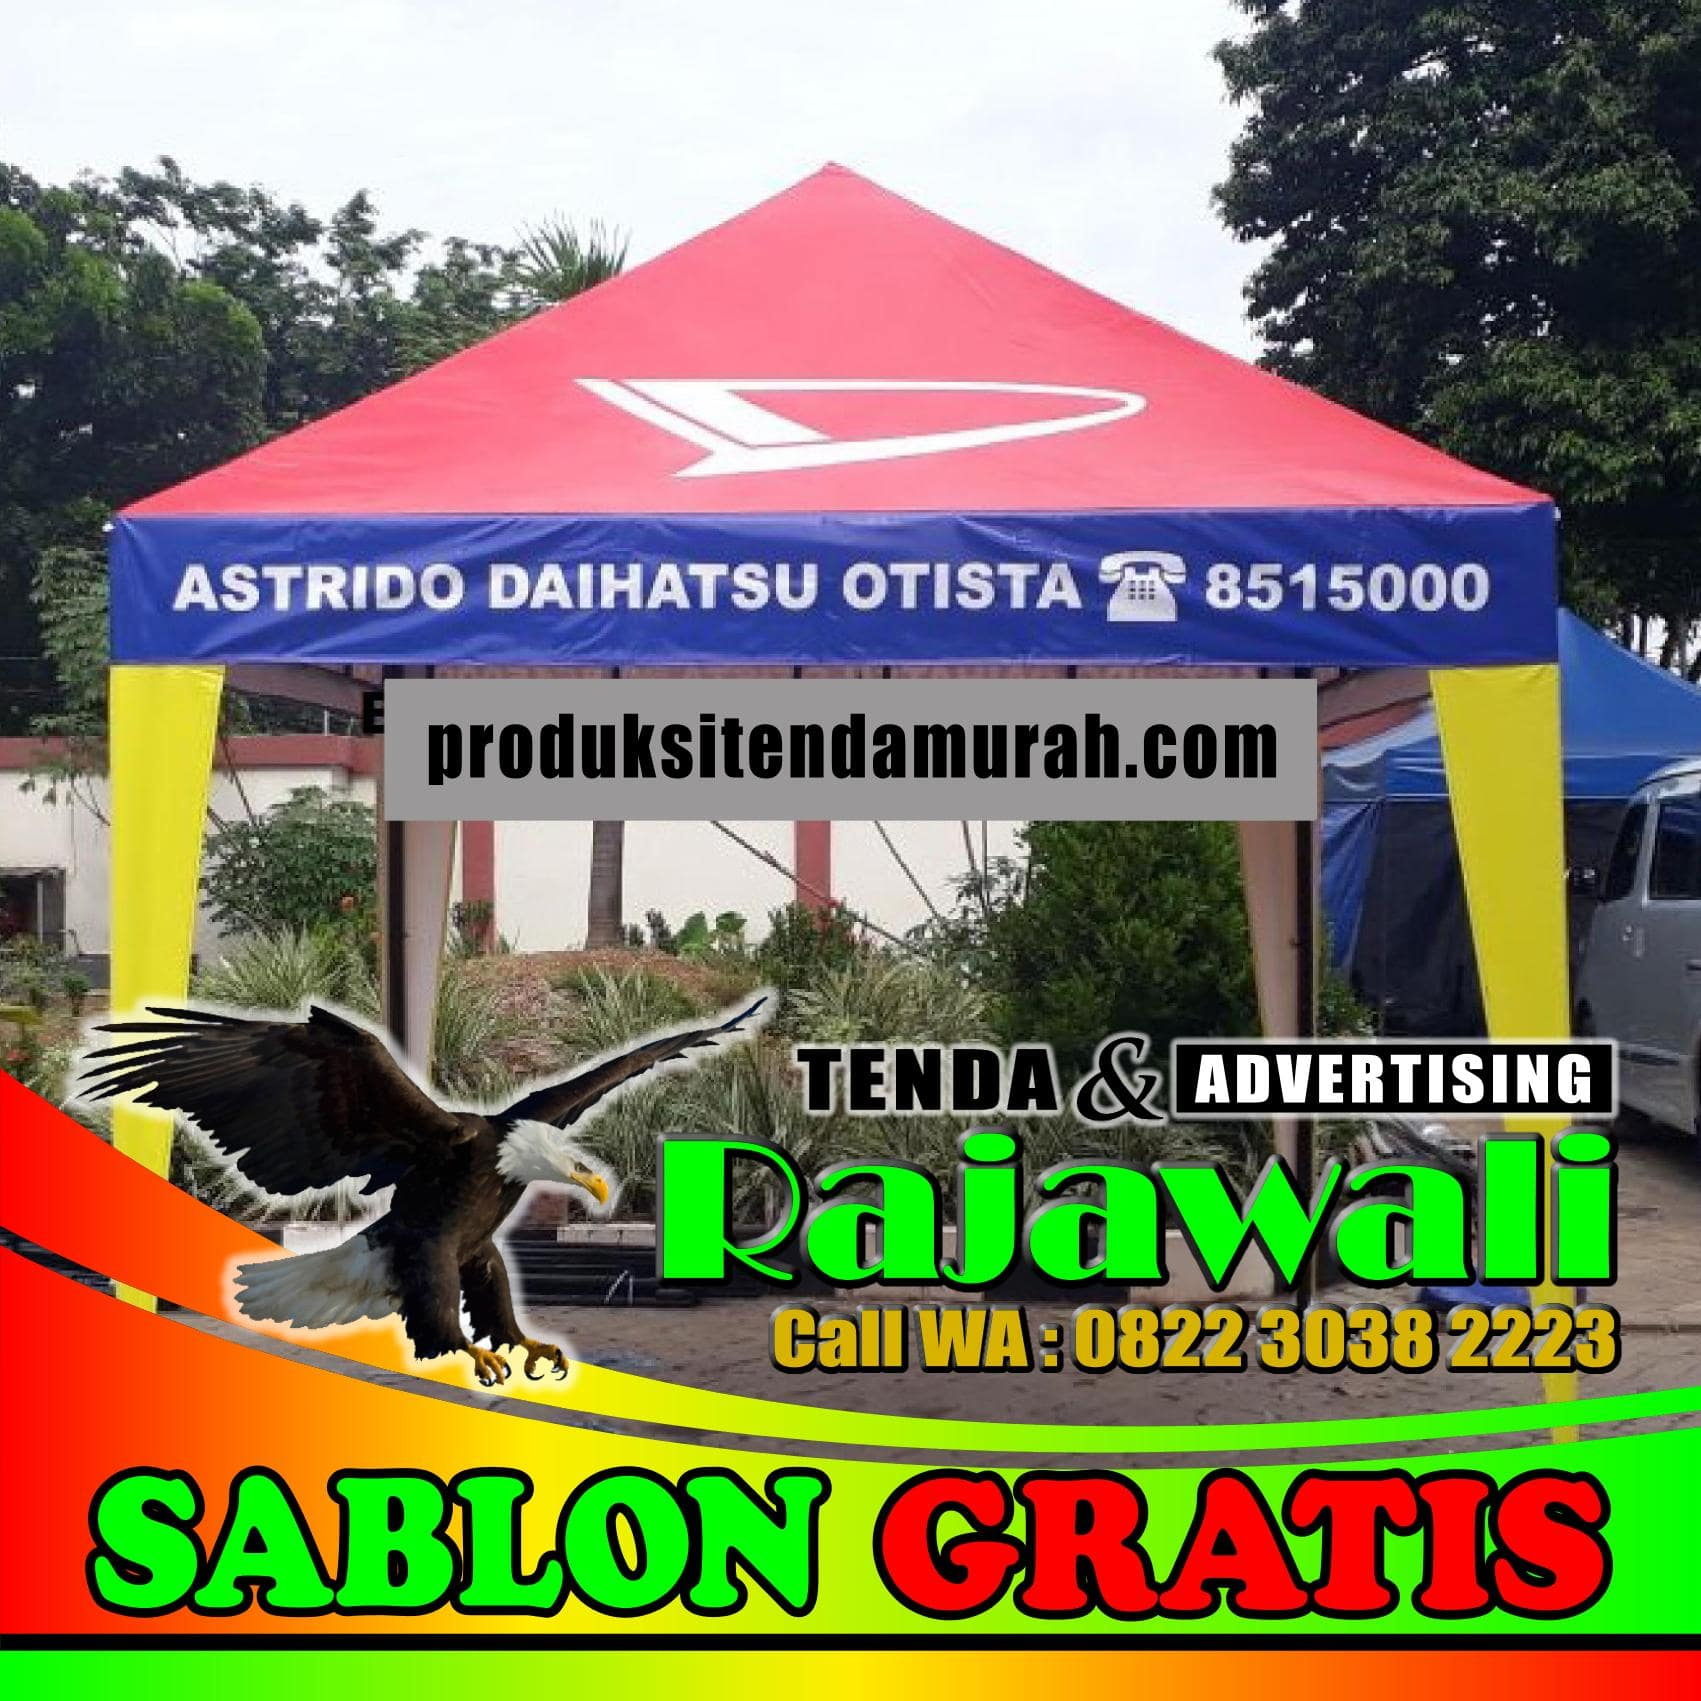 Tenda display, Tenda display murah, jual Tenda display, jual Tenda display murah, jual Tenda display murah surabaya, Tenda display murah surabaya, Tenda display murah sidoarjo, Tenda display murah gresik, Tenda display murah malang, jual Tenda display murah sidoarjo, jual Tenda display murah gresik, jual Tenda display murah malang, harga Tenda display, harga Tenda display surabaya, harga Tenda display sidoarjo, harga Tenda display gresik, harga Tenda display malang, tenda display, harga tenda display, tenda display led, jual tenda display, jual tenda display surabaya, jual tenda display sidoarjo, jual tenda display murah surabaya, jual tenda display gresik, jual tenda display malang, harga tenda display, harga tenda display surabaya, harga tenda display gresik, harga tenda display sidoarjo, harga tenda display malang, produsen tenda display, pabrik tenda display, distributor tenda display, supplier tenda display, agen tenda display, tenda display murah